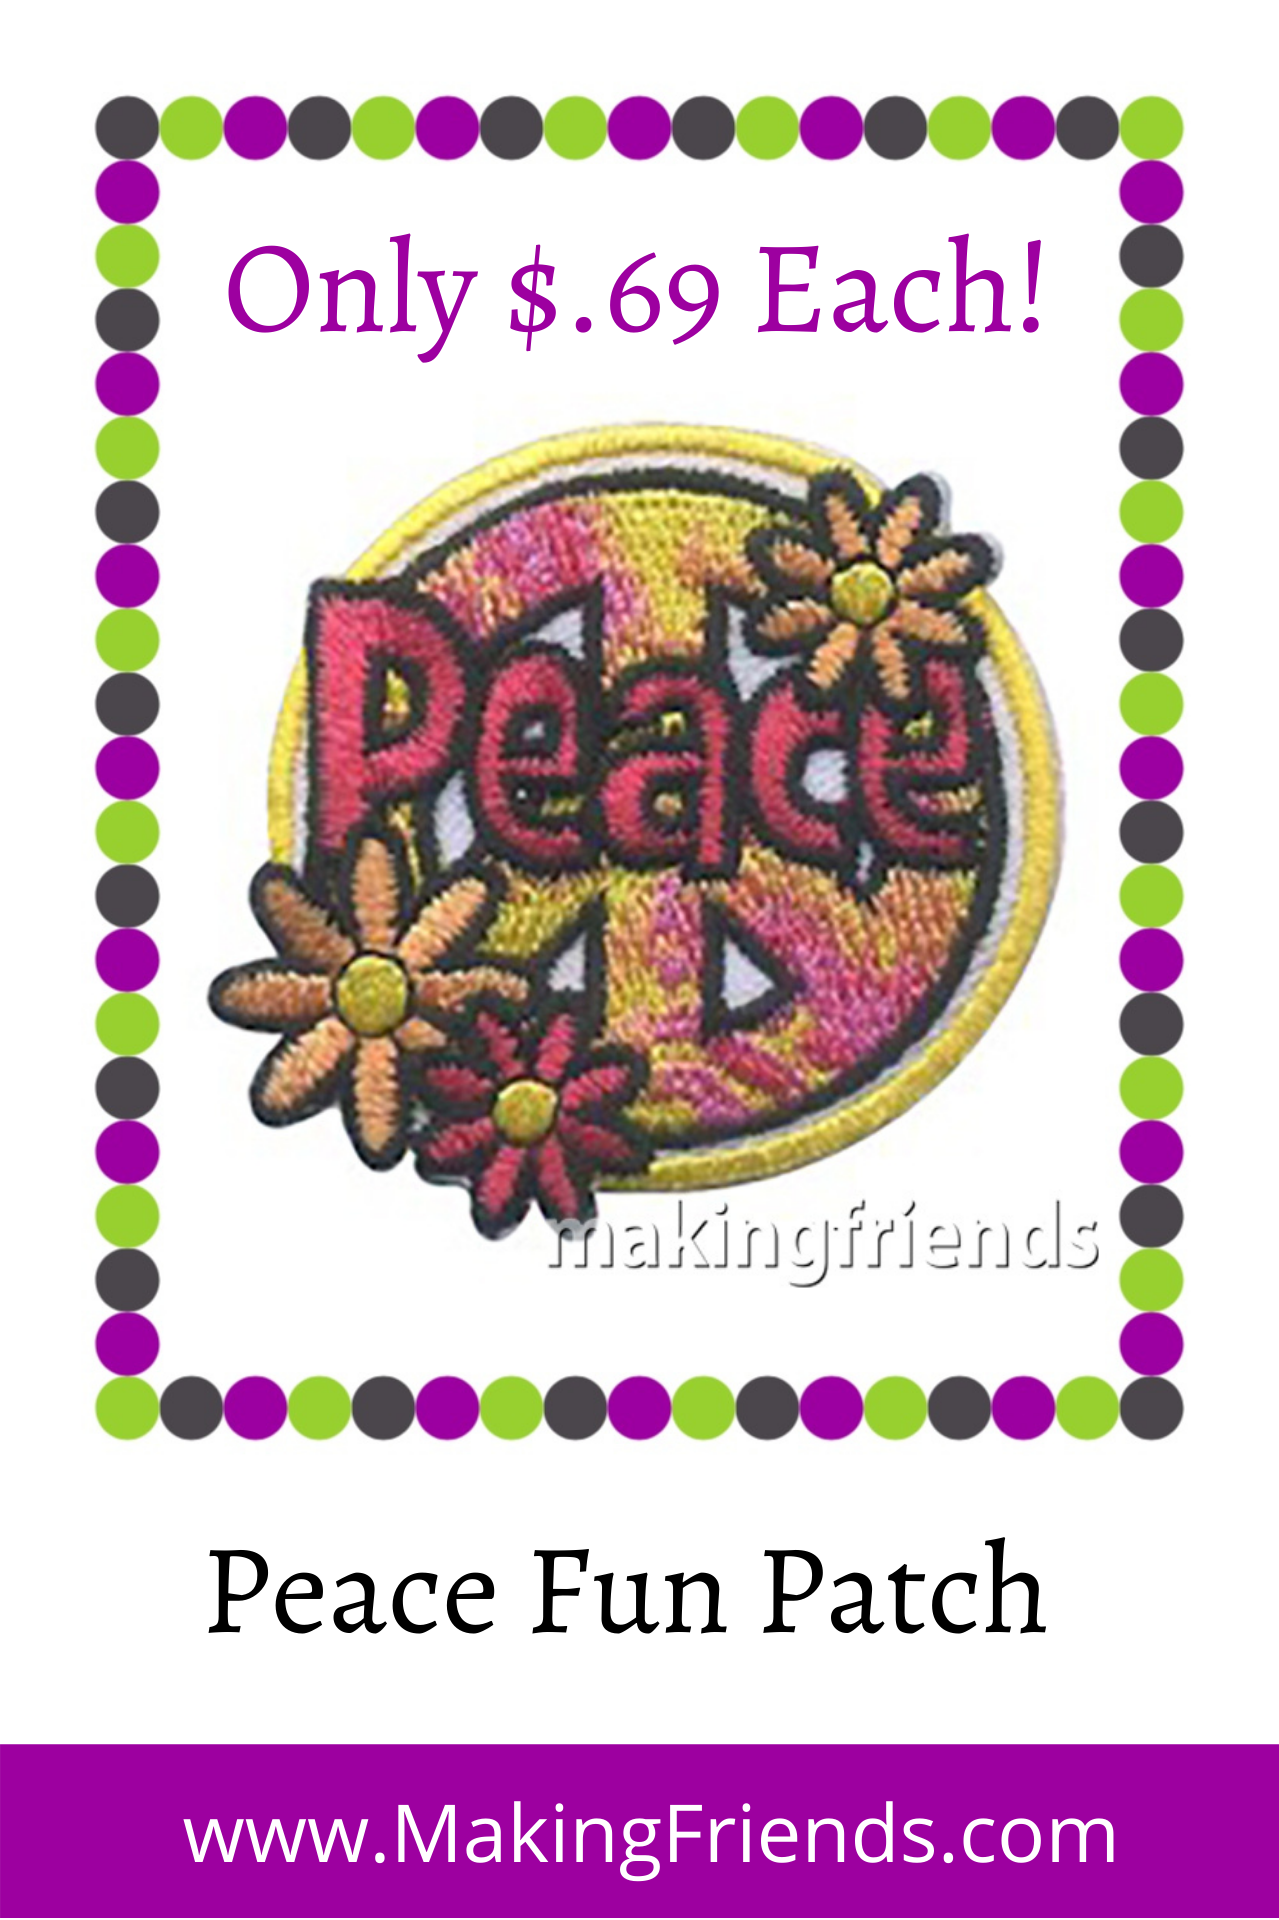 Teaching your group how to keep the peace or settle conflicts peacefully? The Peace patch is for you! $.69 each free shipping available #makingfriends #peace #peacefunpatch #funpatch #gsfunpatch #settleconflict #peacepatch #badges #peacebadge via @gsleader411